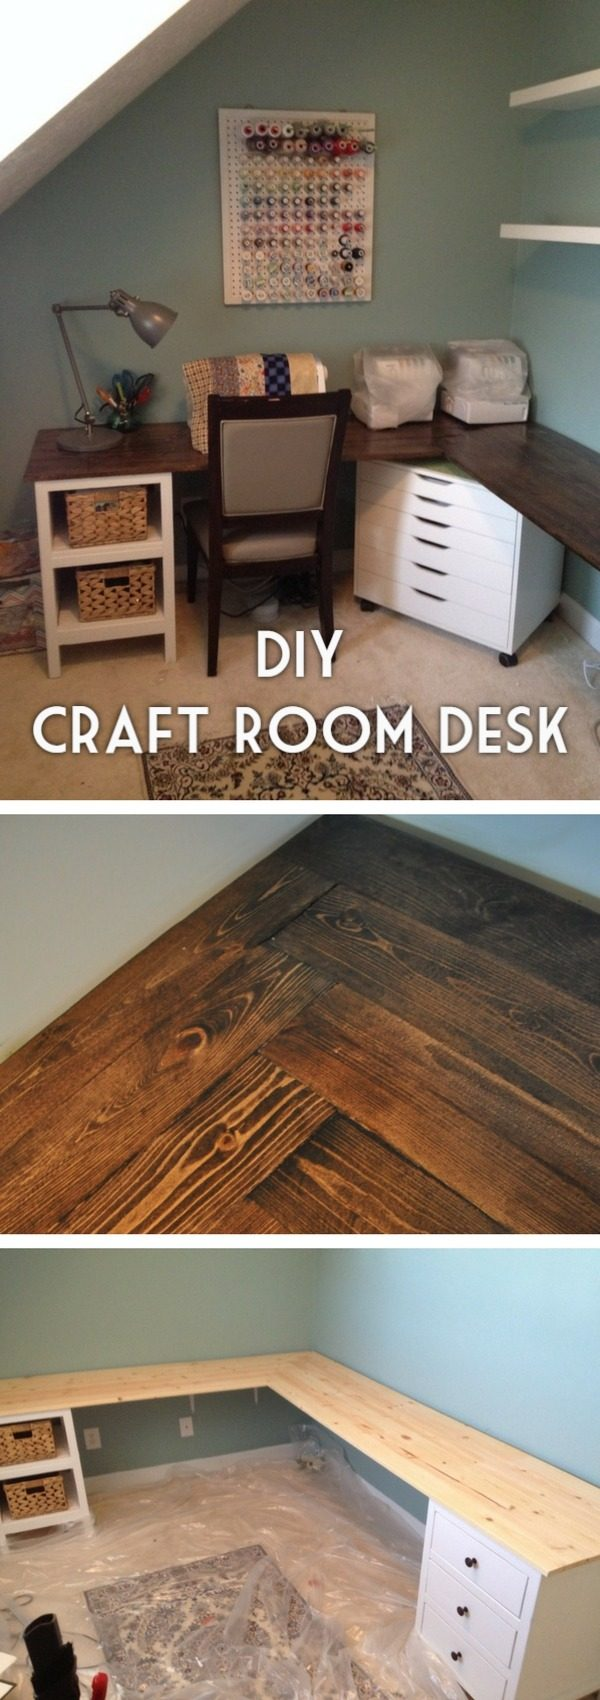 Check out the tutorial how to build an easy to assemble DIY craft room desk